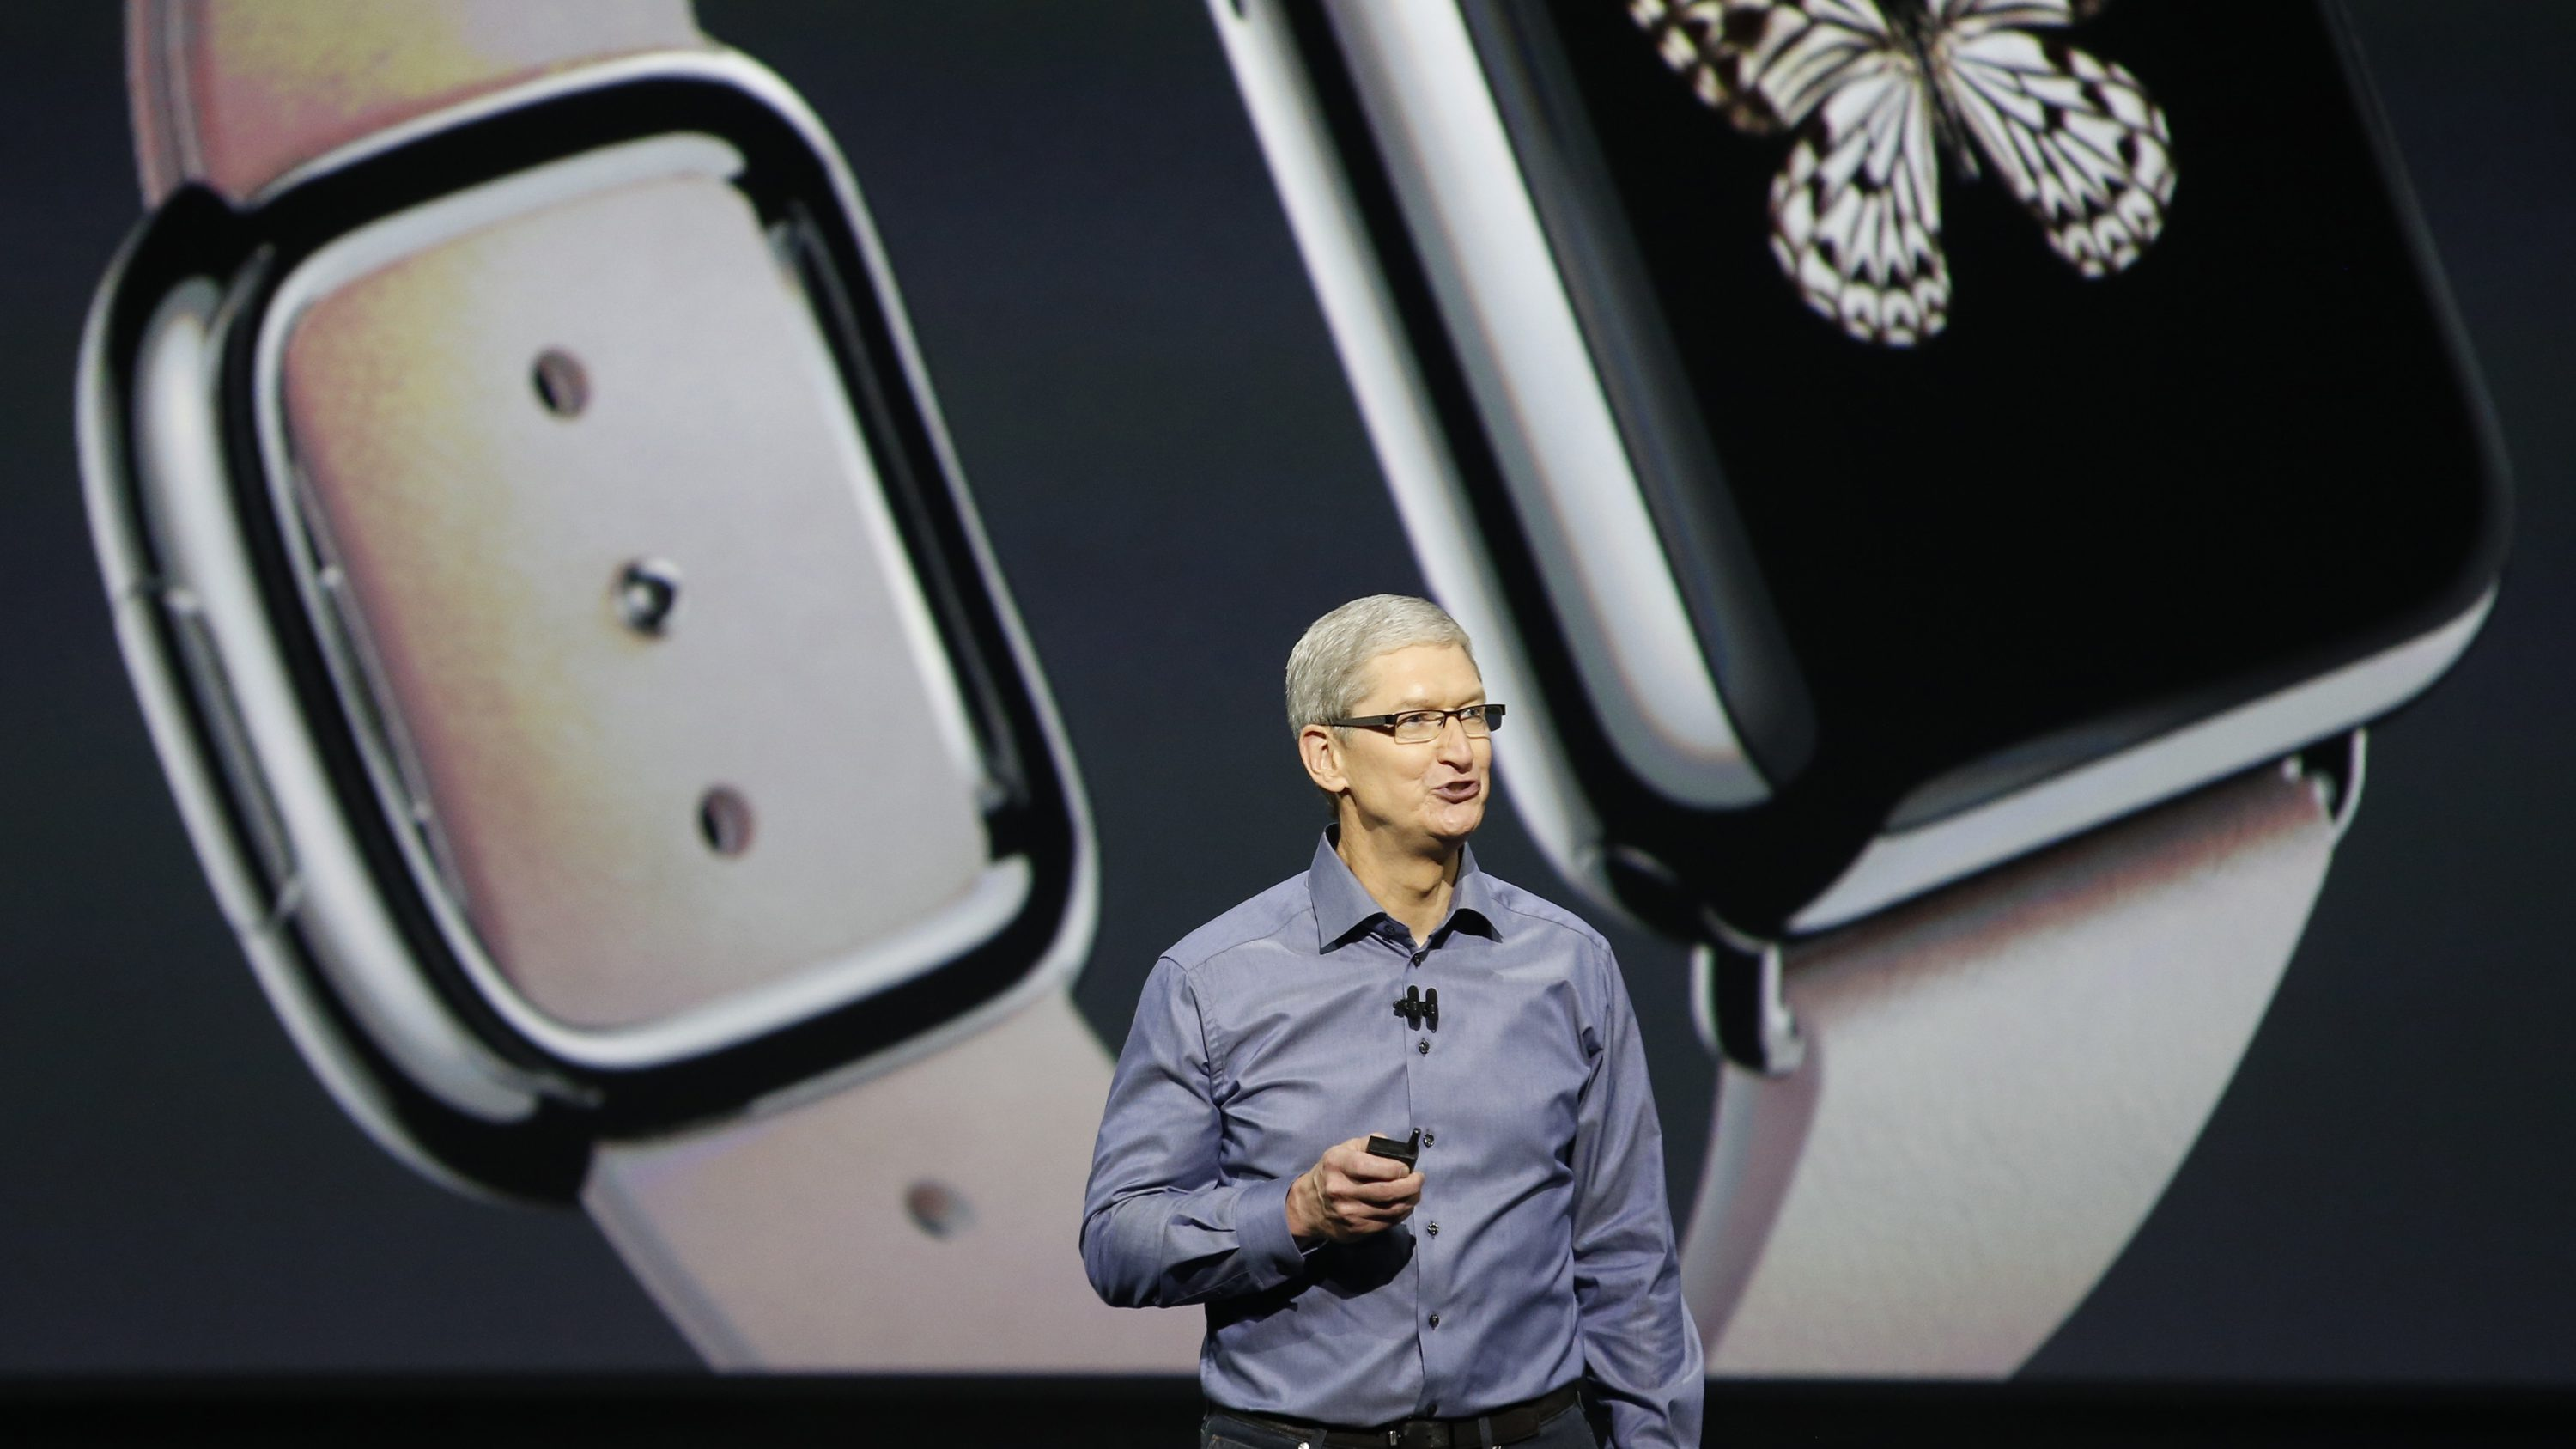 Why Jamaica knows about Apple's new products before the rest of the world